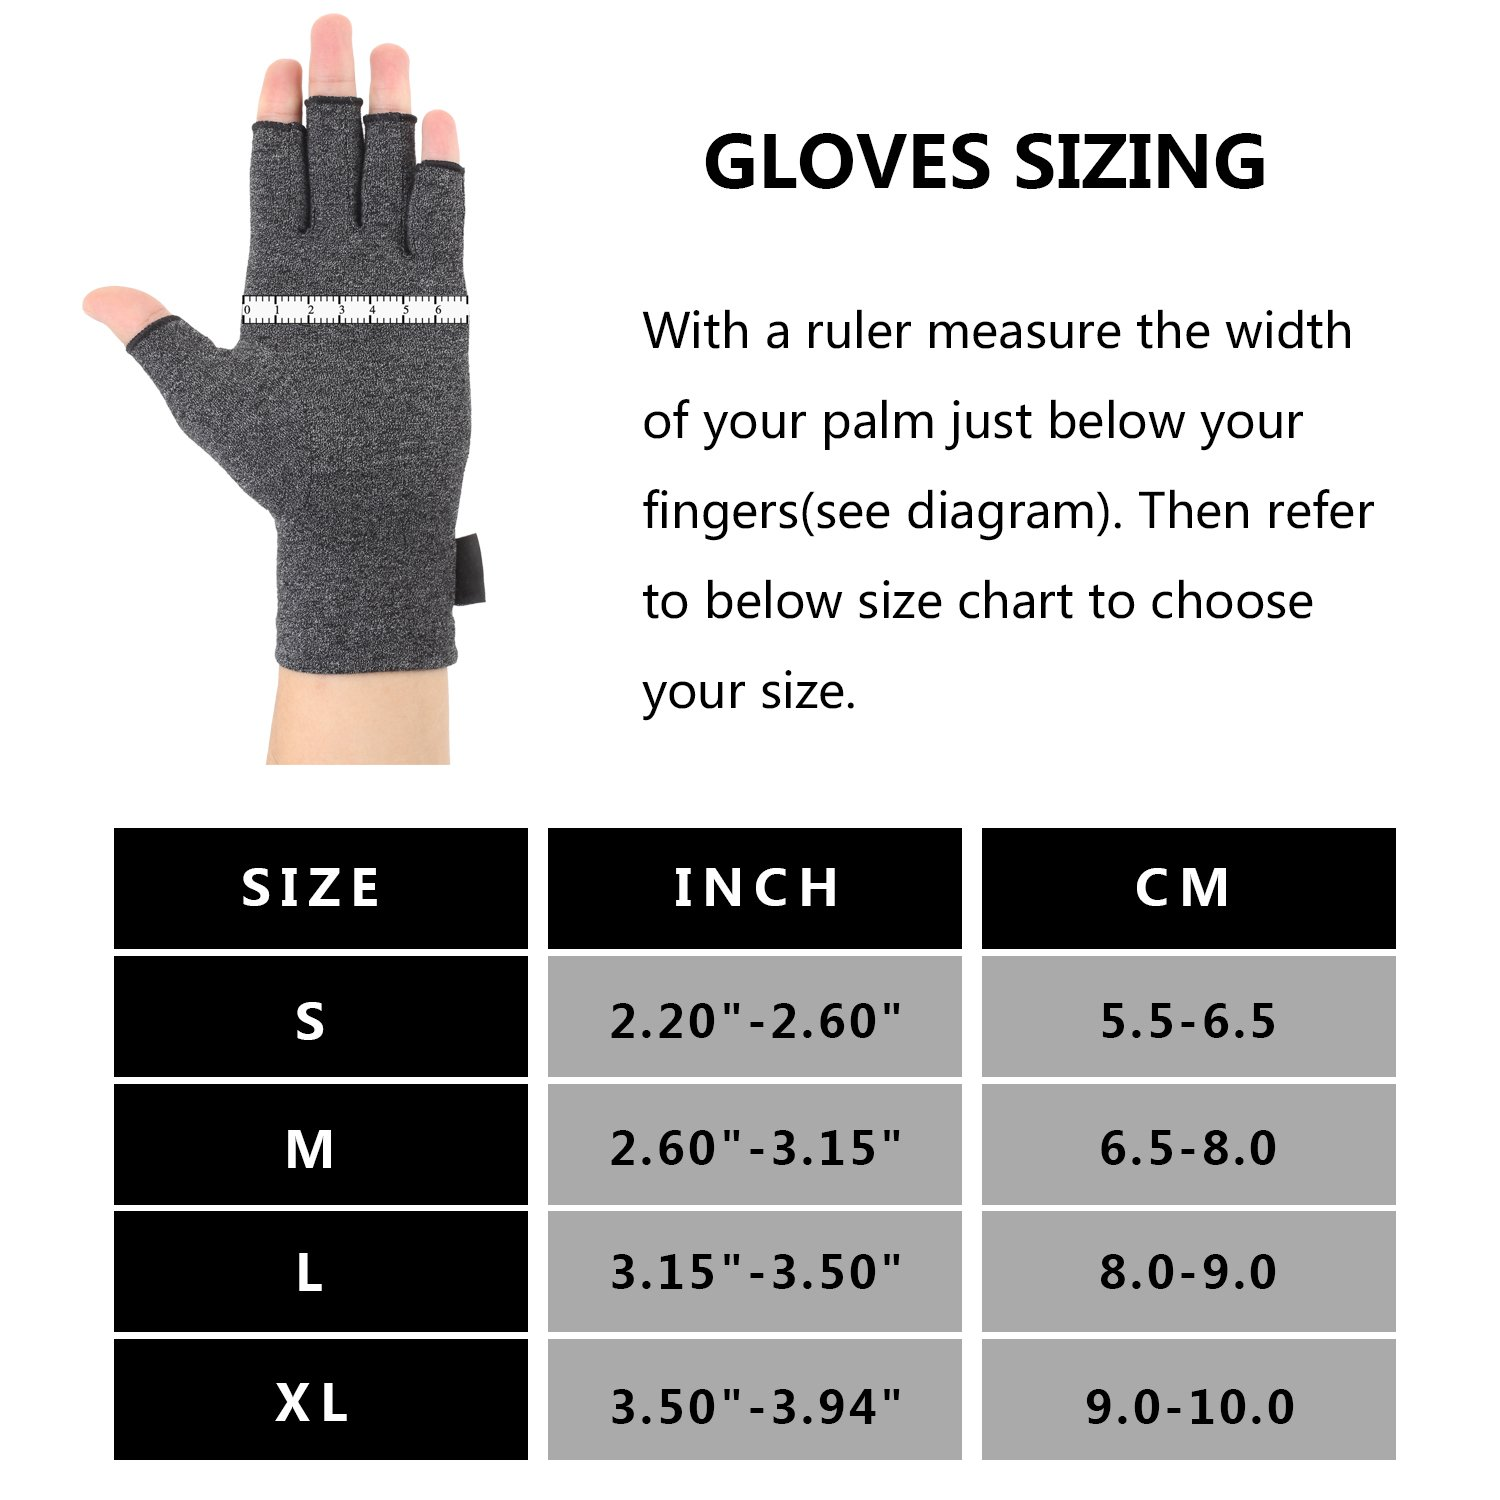 Arthritis Gloves 2 Pairs, Compression Gloves Support and Warmth for Hands, Finger Joint, Relieve Pain from Rheumatoid, Osteoarthritis, RSI, Carpal Tunnel, Tendonitis, Women and Men (Gray, Large) by Brace Master (Image #3)